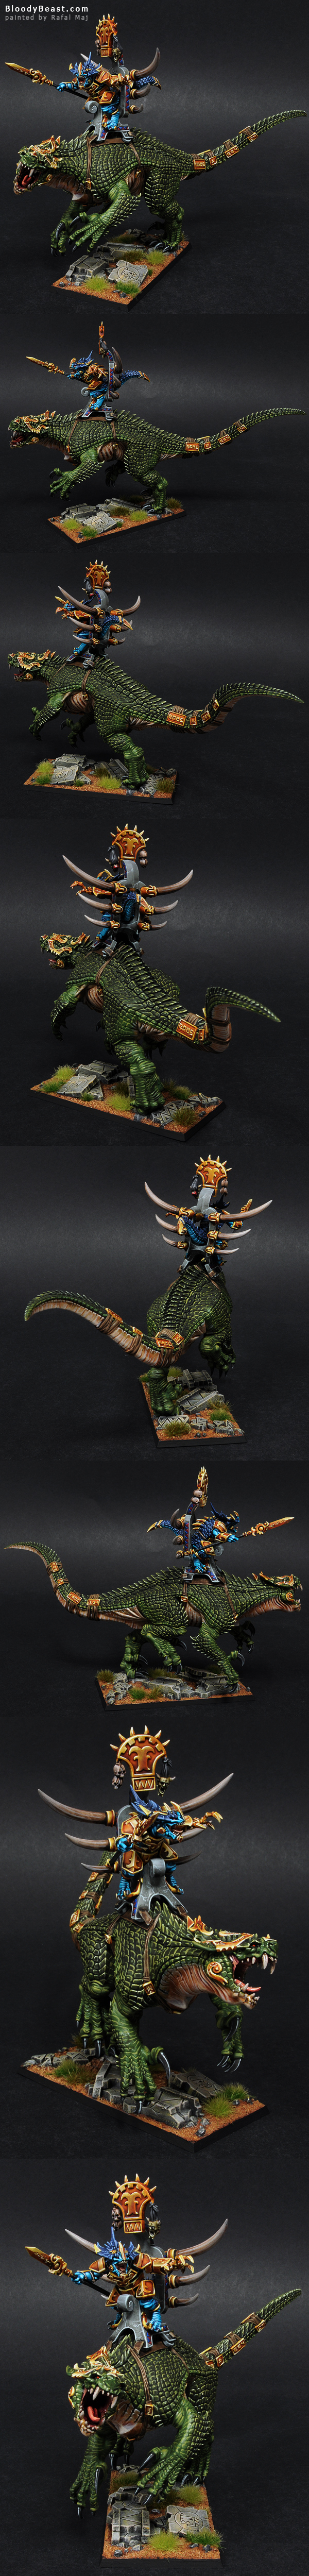 Lizardmen Legendary Saurus Lord Kroq-Gar On Carnosaur Grymloq painted by Rafal Maj (BloodyBeast.com)